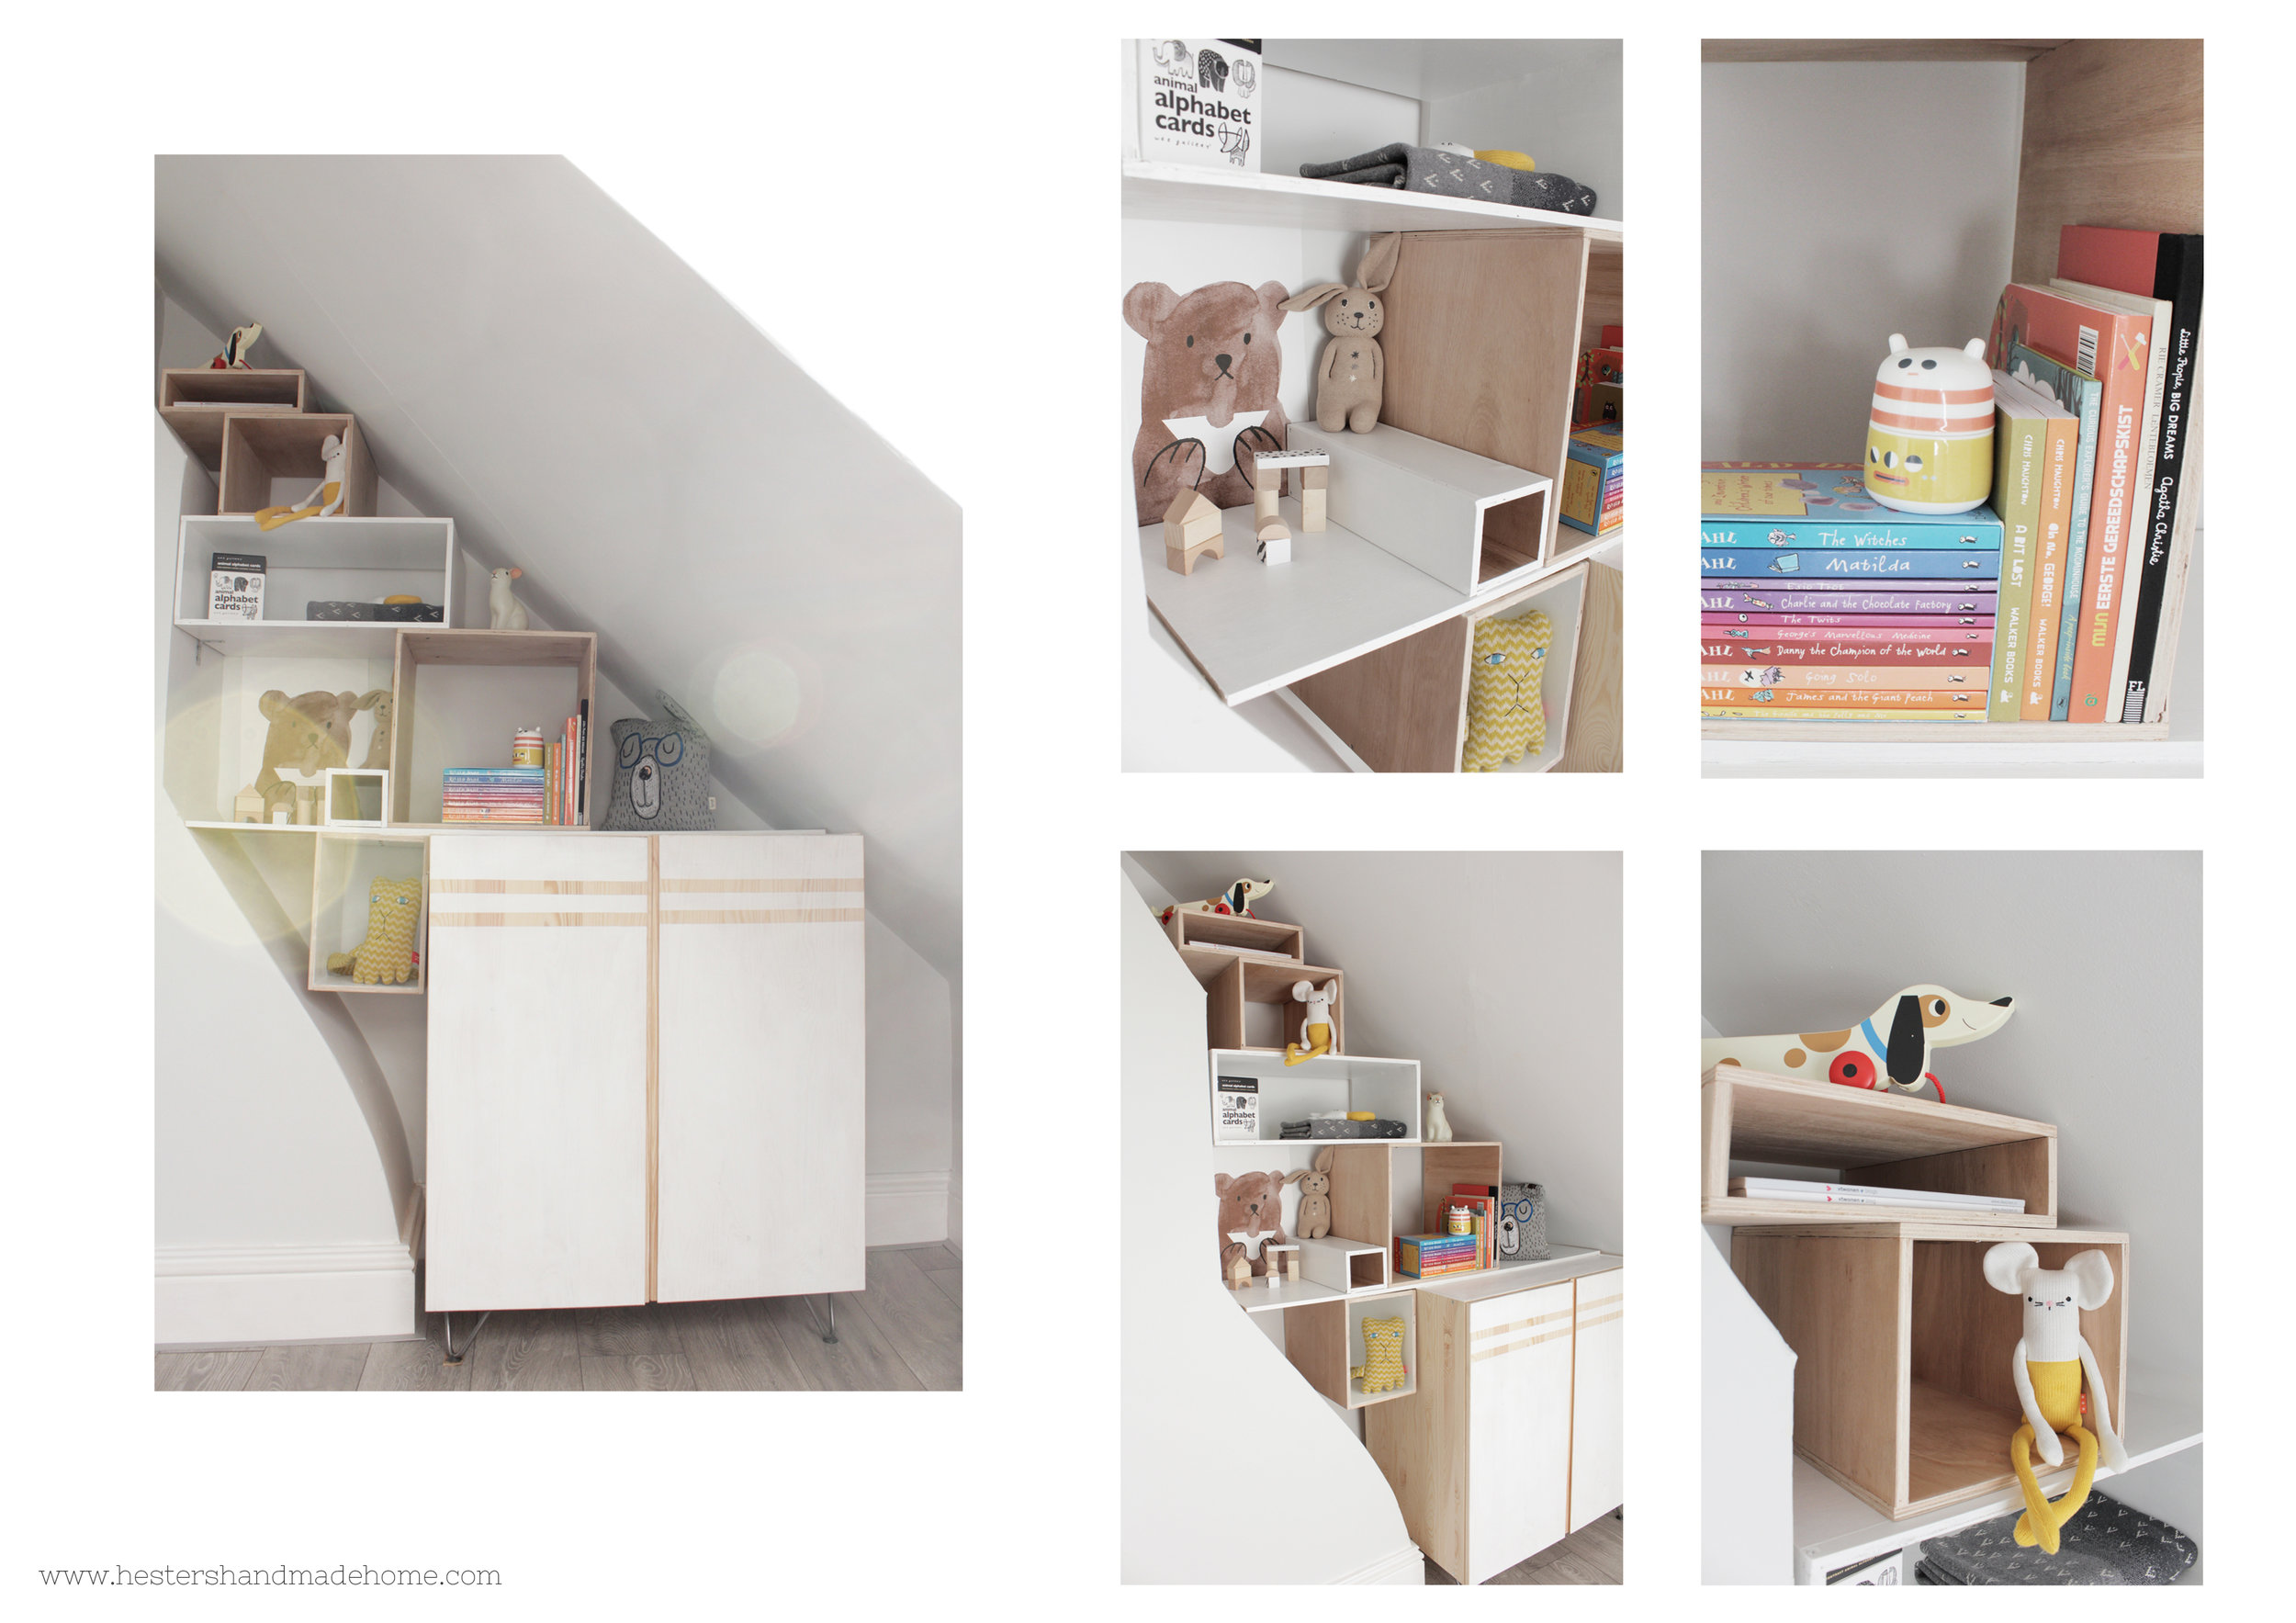 Alcove bookcase by www.hestershandmadehome.com